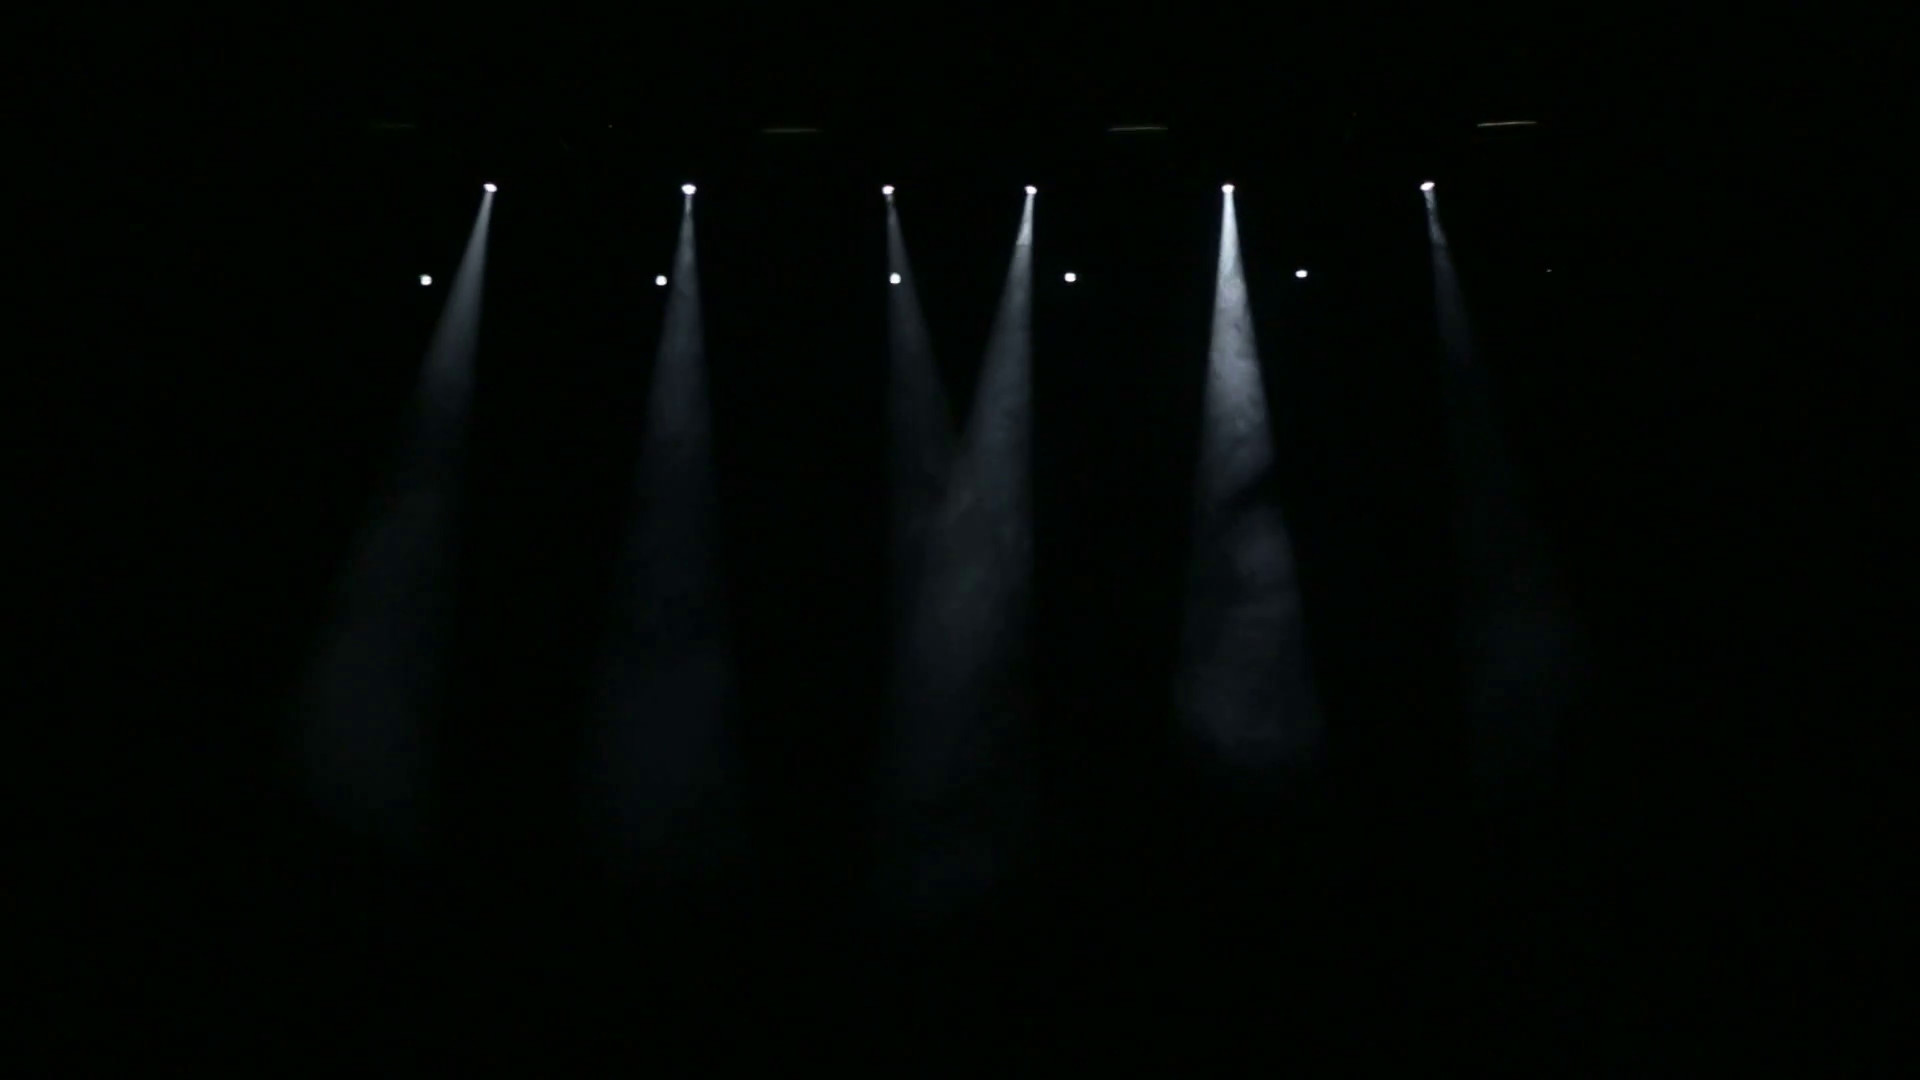 stage lighting wallpaper - photo #49